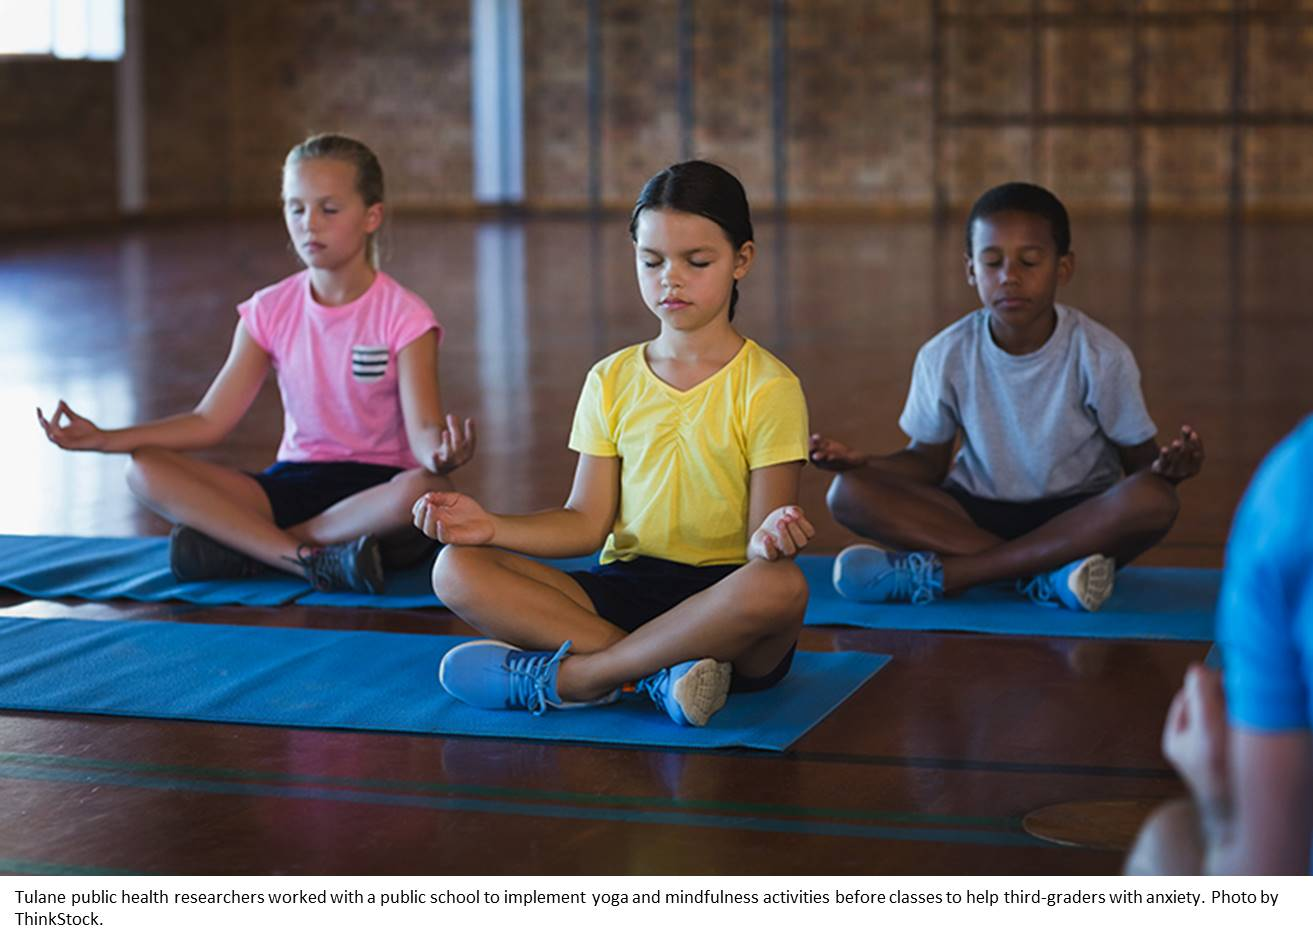 School-based yoga can help children better manage stress and anxiety